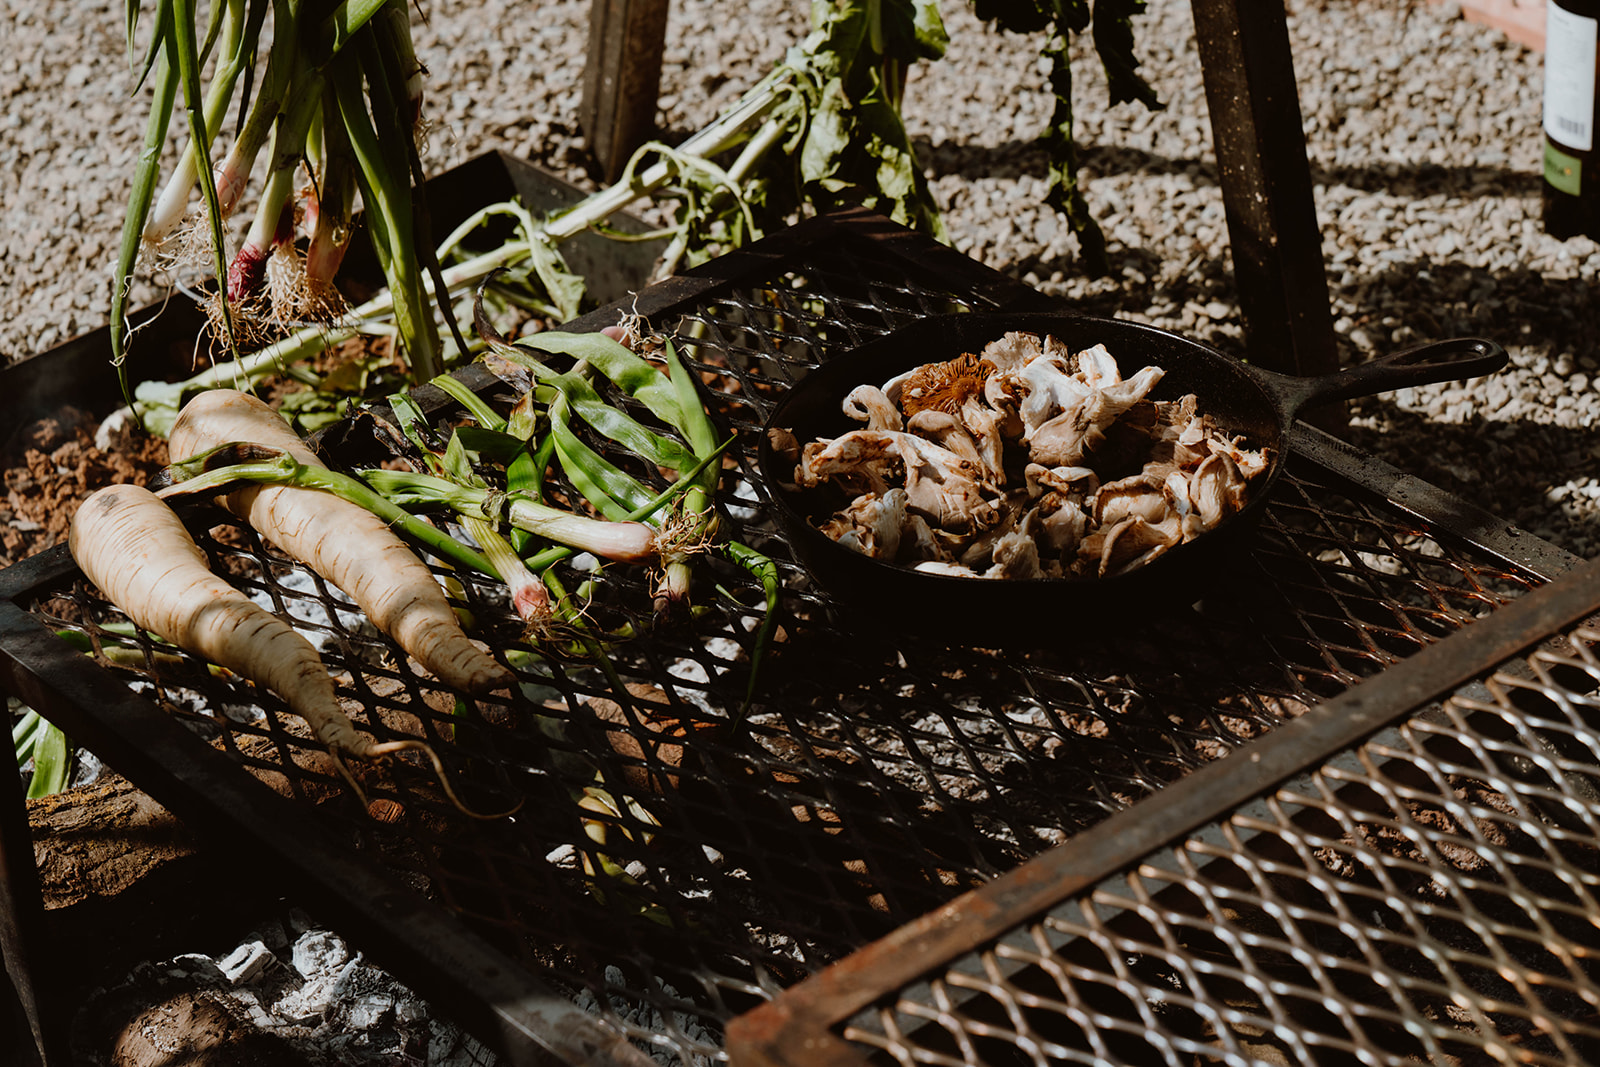 Open flame roasting of vegetables and mushrooms.